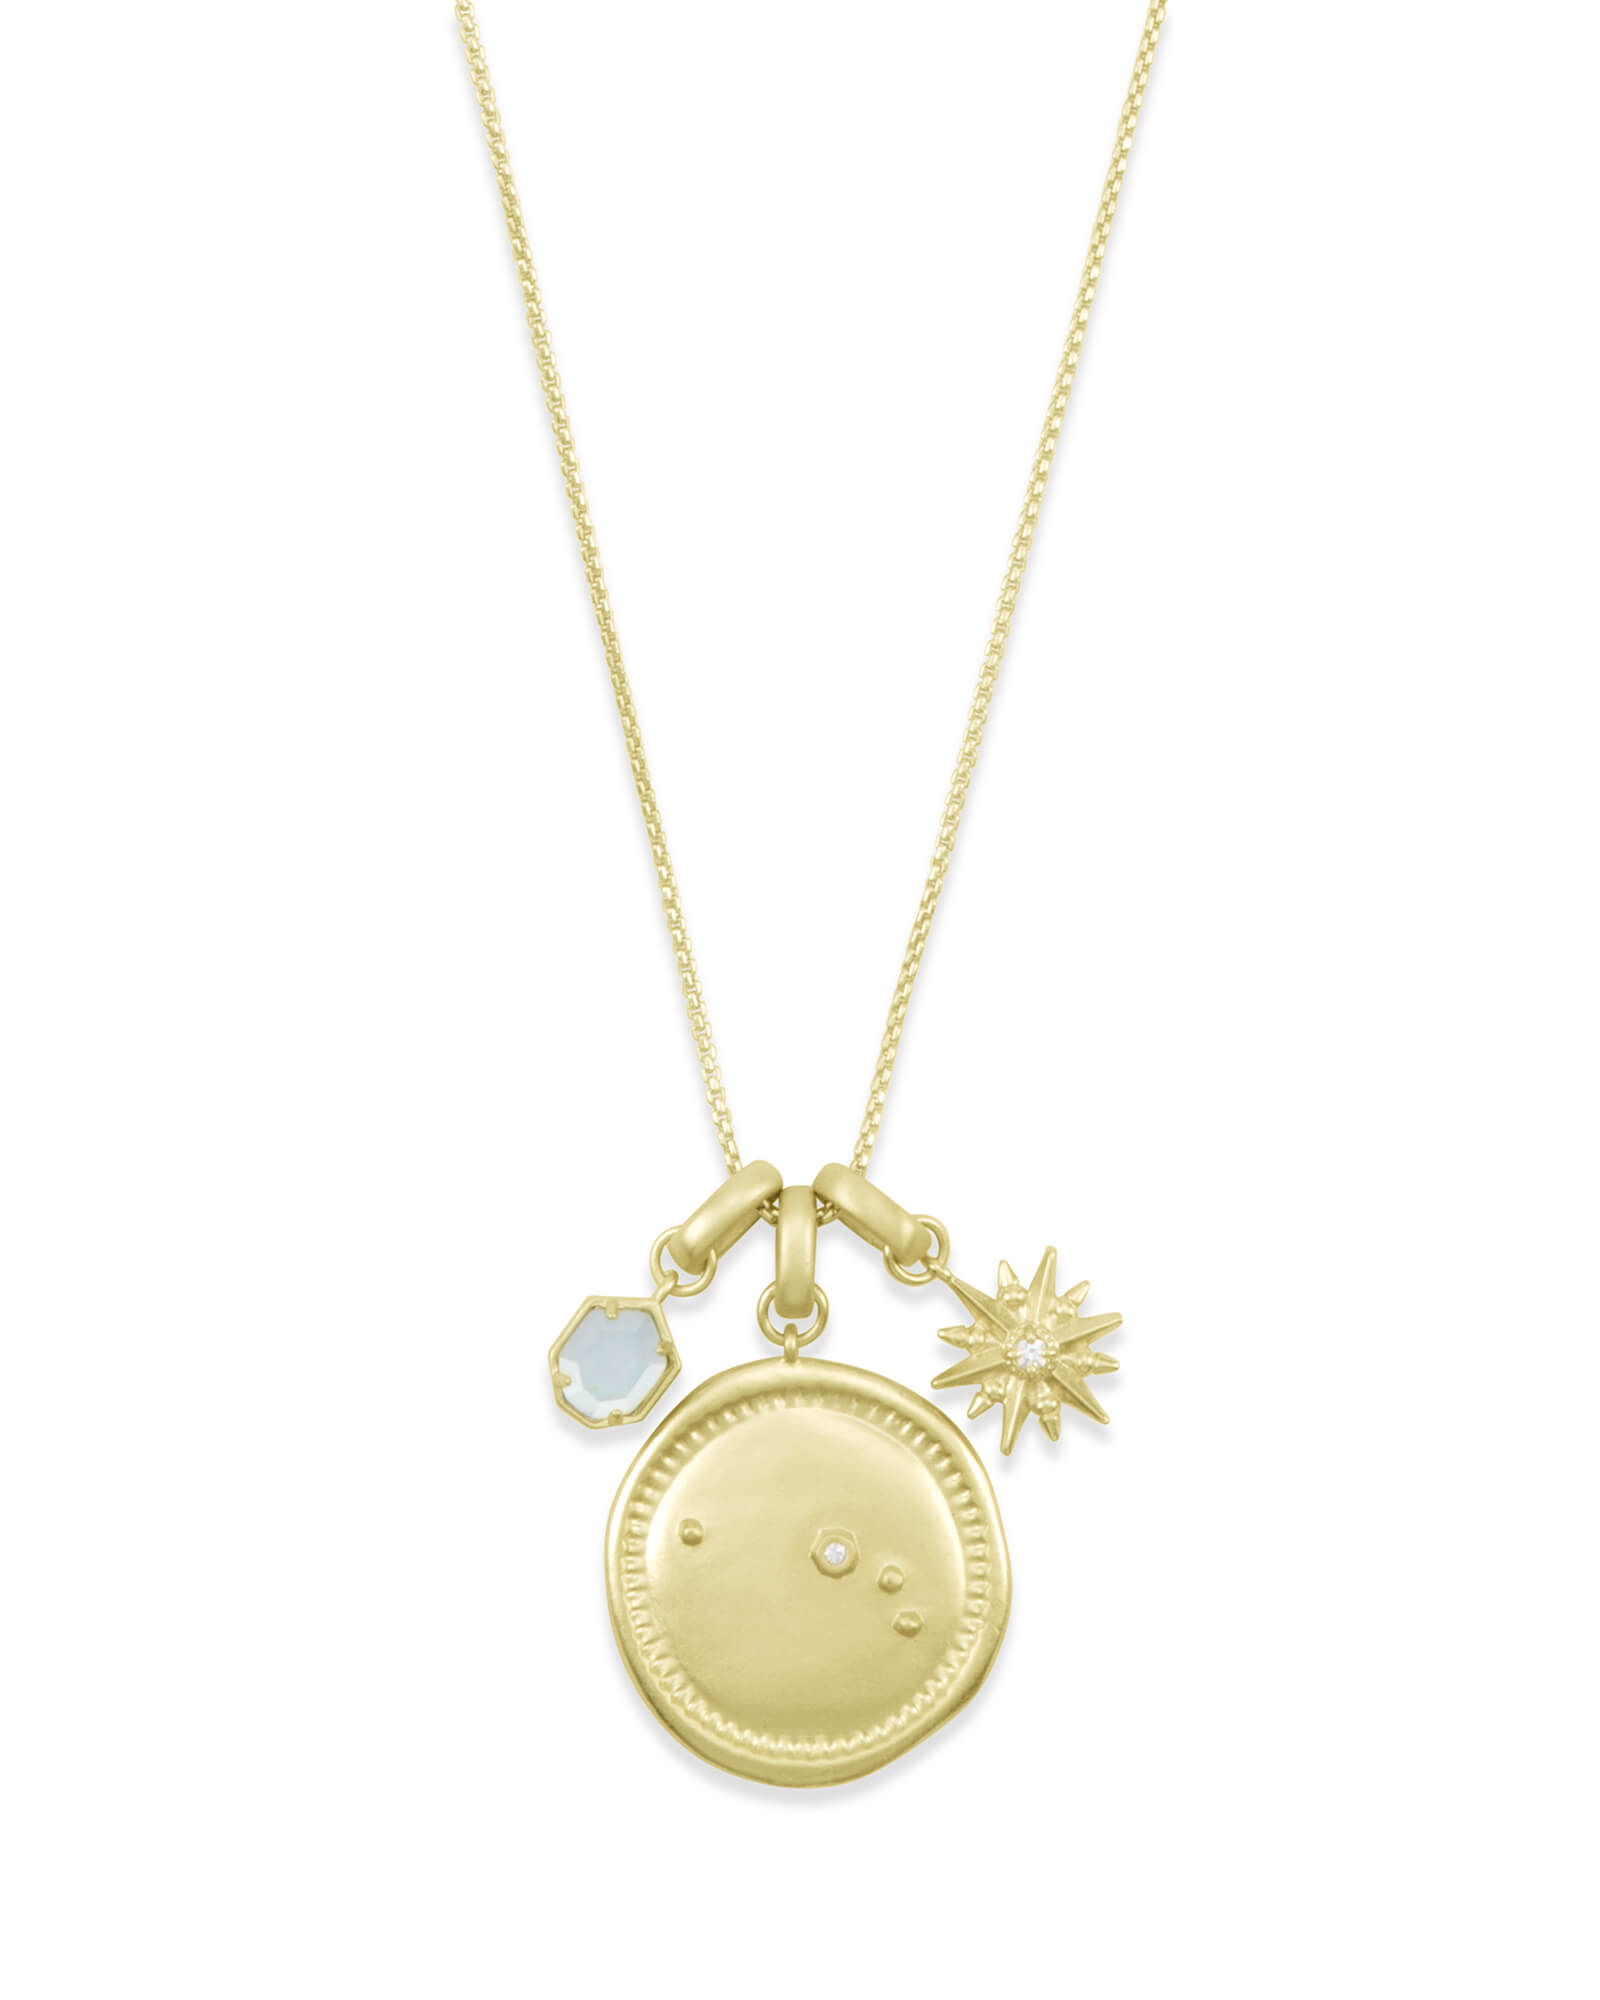 March Aries Charm Necklace Set in Gold